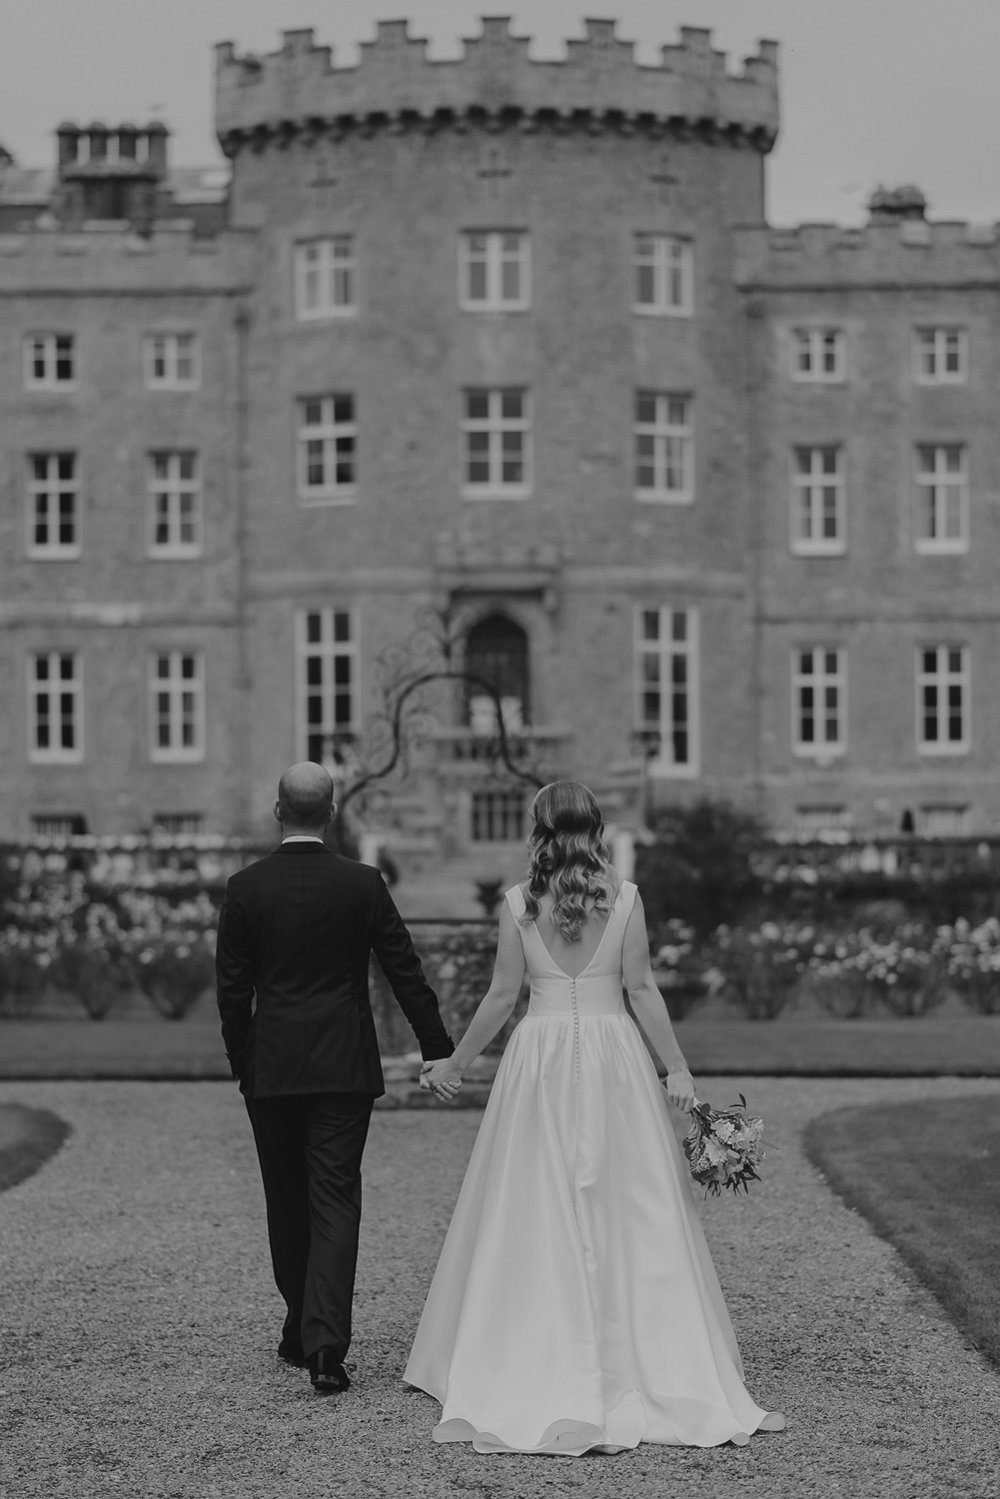 Markree castle wedding photographs -41.jpg